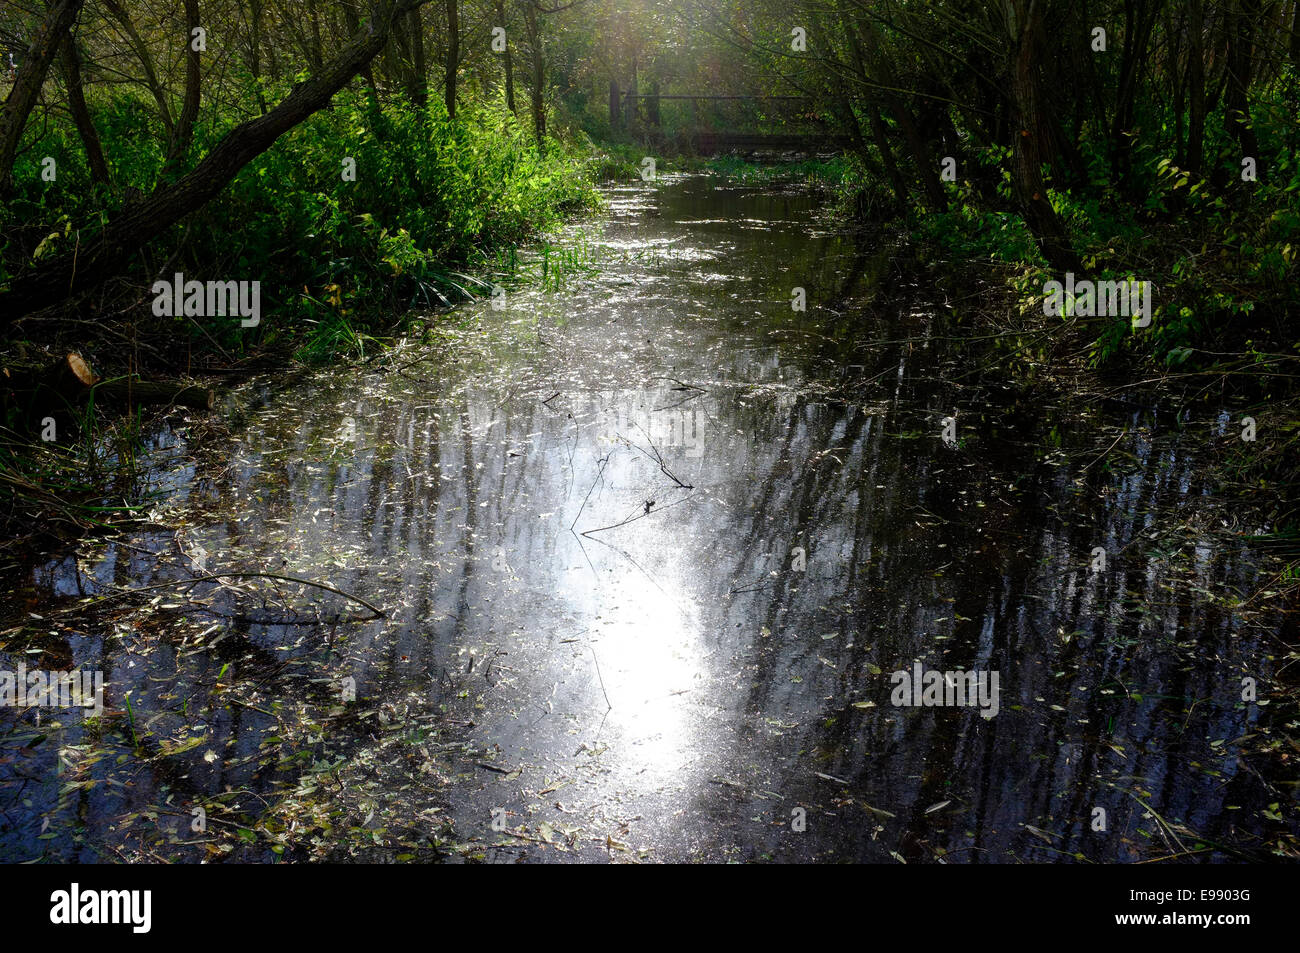 Small stream with sunlight glistening on the water. - Stock Image